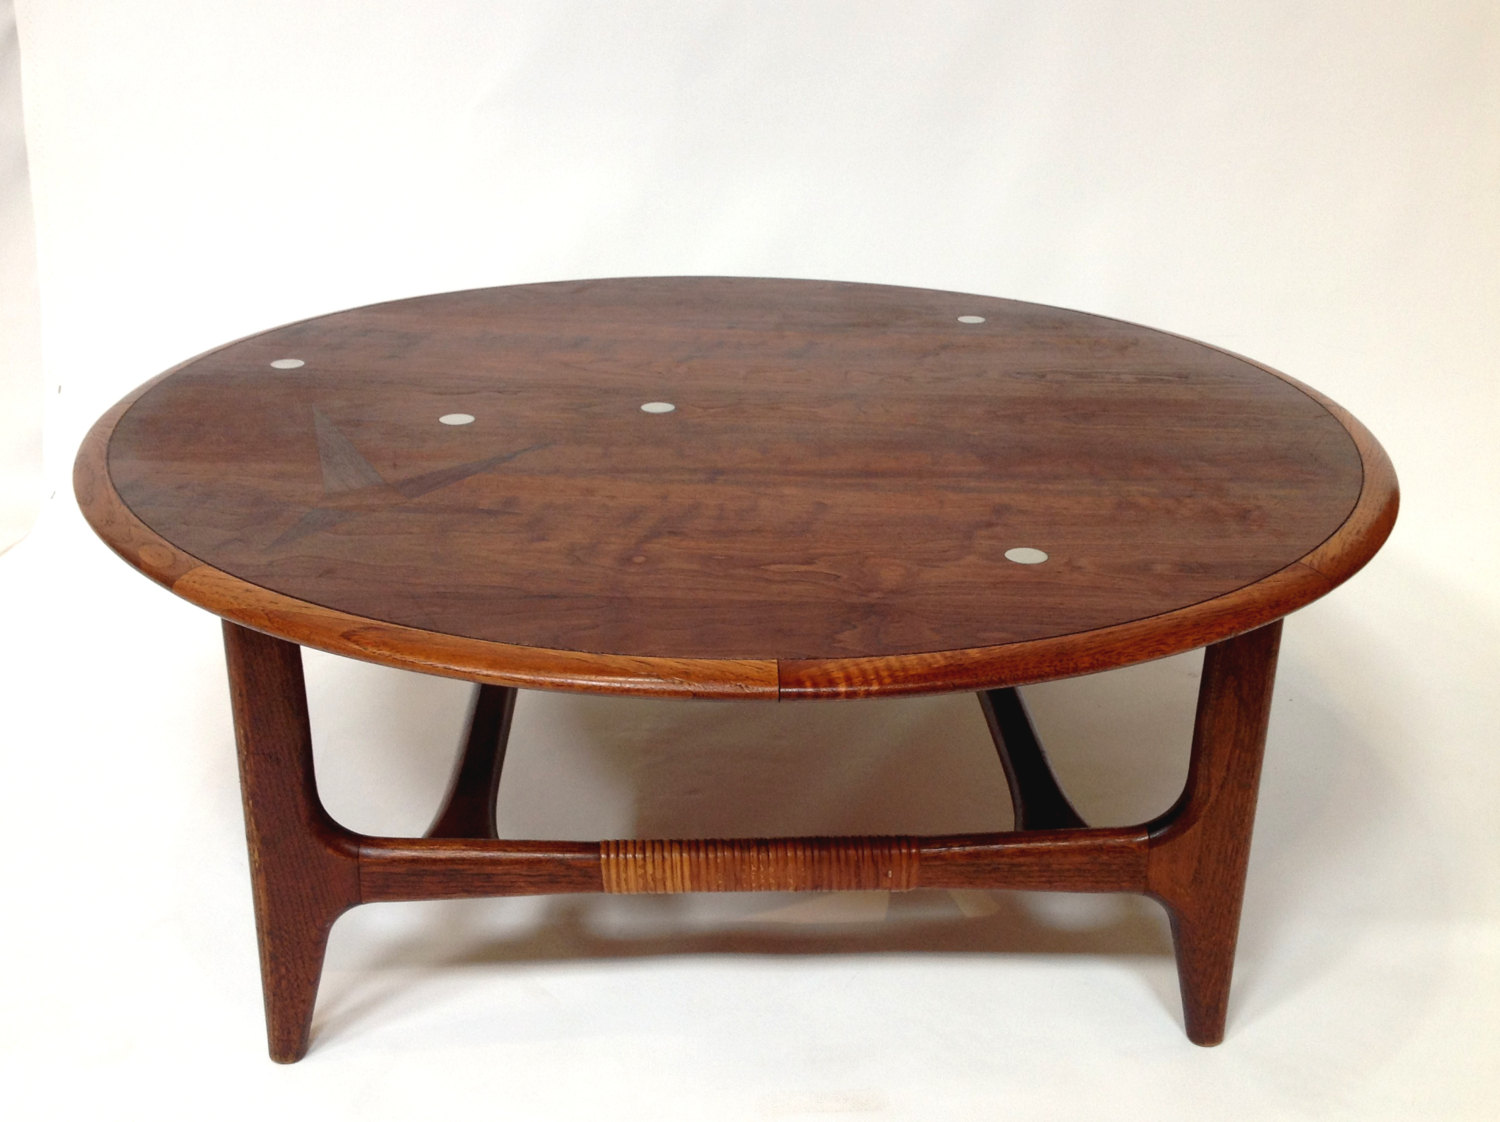 Danish Modern Coffee Table | Mid Century Modern Atomic Style Coffee Table  By Lane